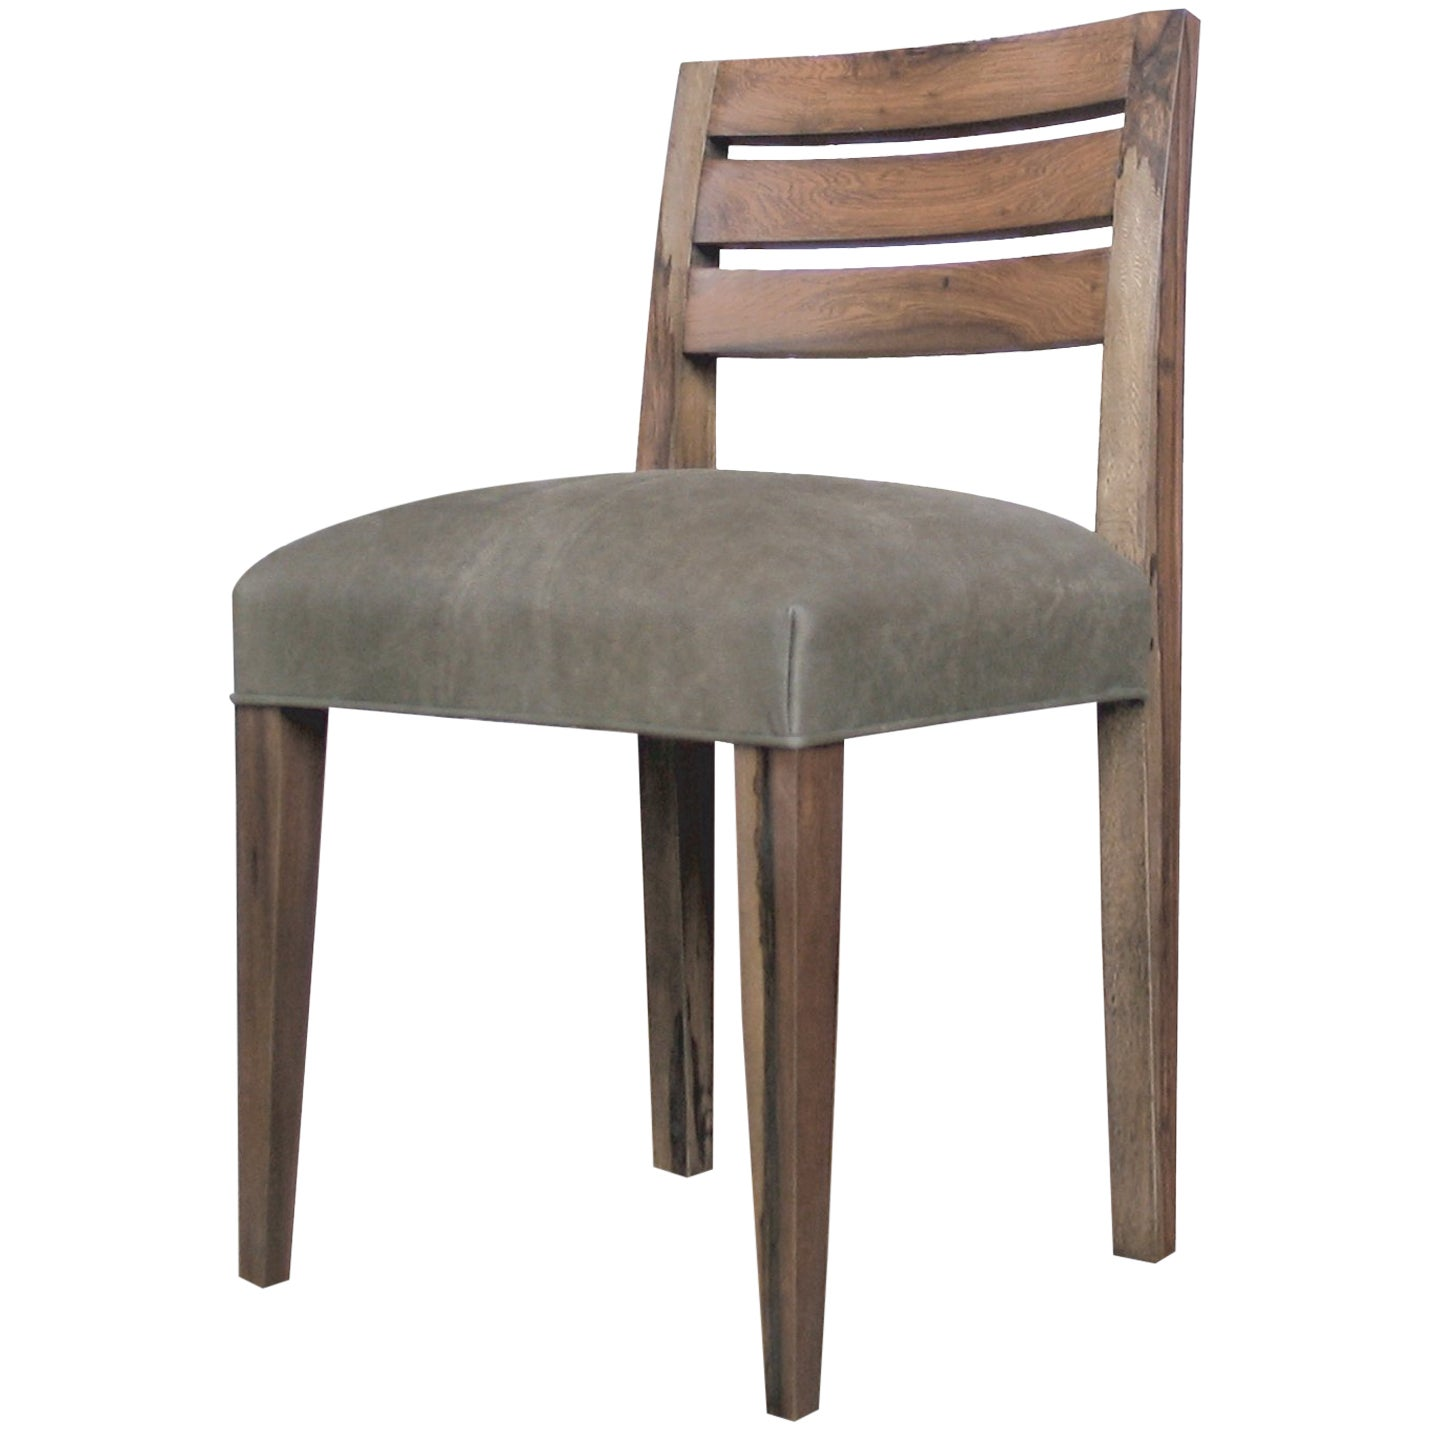 Renzo Contemporary Argentine Rosewood and Leather Side Chair from Costantini